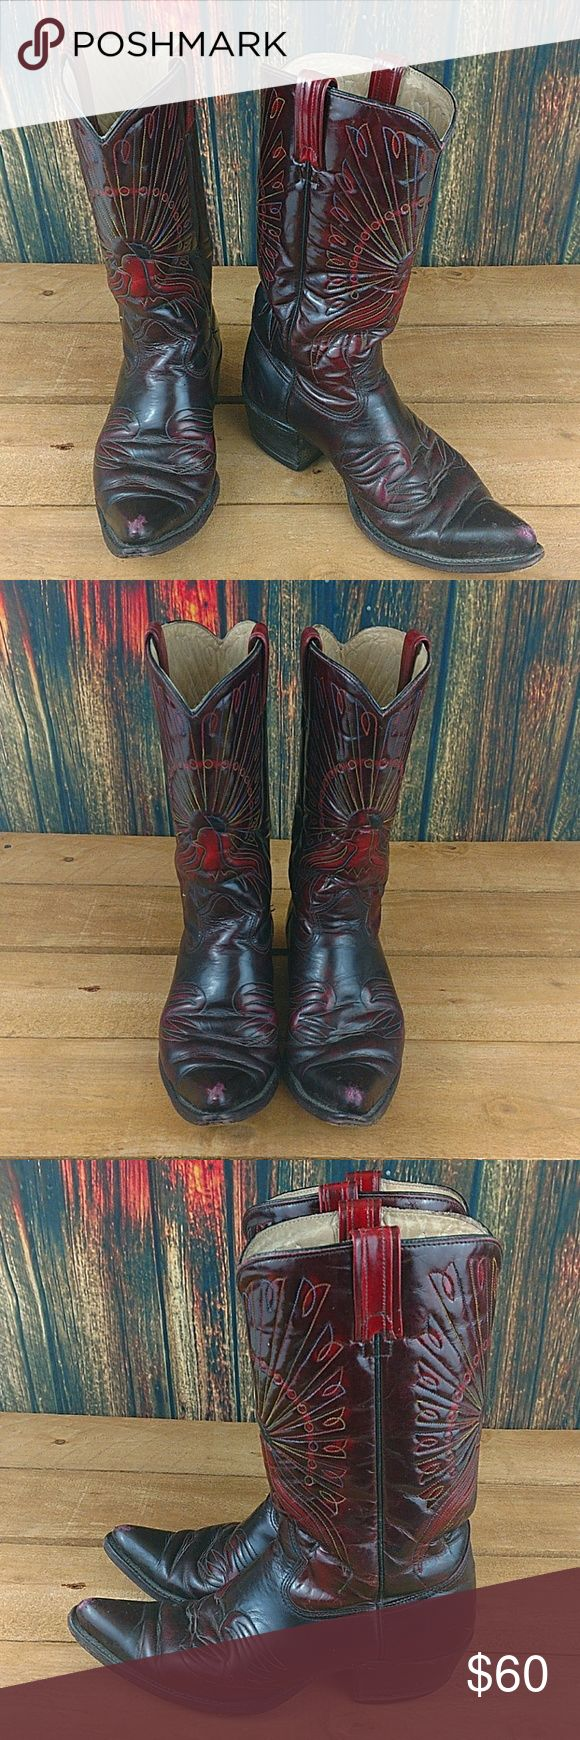 SEARS PEACOCK STITCHED RED WESTERN COWBOY BOOTS VINTAGE SEARS MENS PEACOCK STITCHED RED WESTERN COWBOY BOOTS  US 10.5   GOOD CONDITION WITH SOME SCUFFS ON THE TIPS AND SOME WEAR ON THE SOLES. SEE PICTURES  #1434 Sears Shoes Cowboy & Western Boots